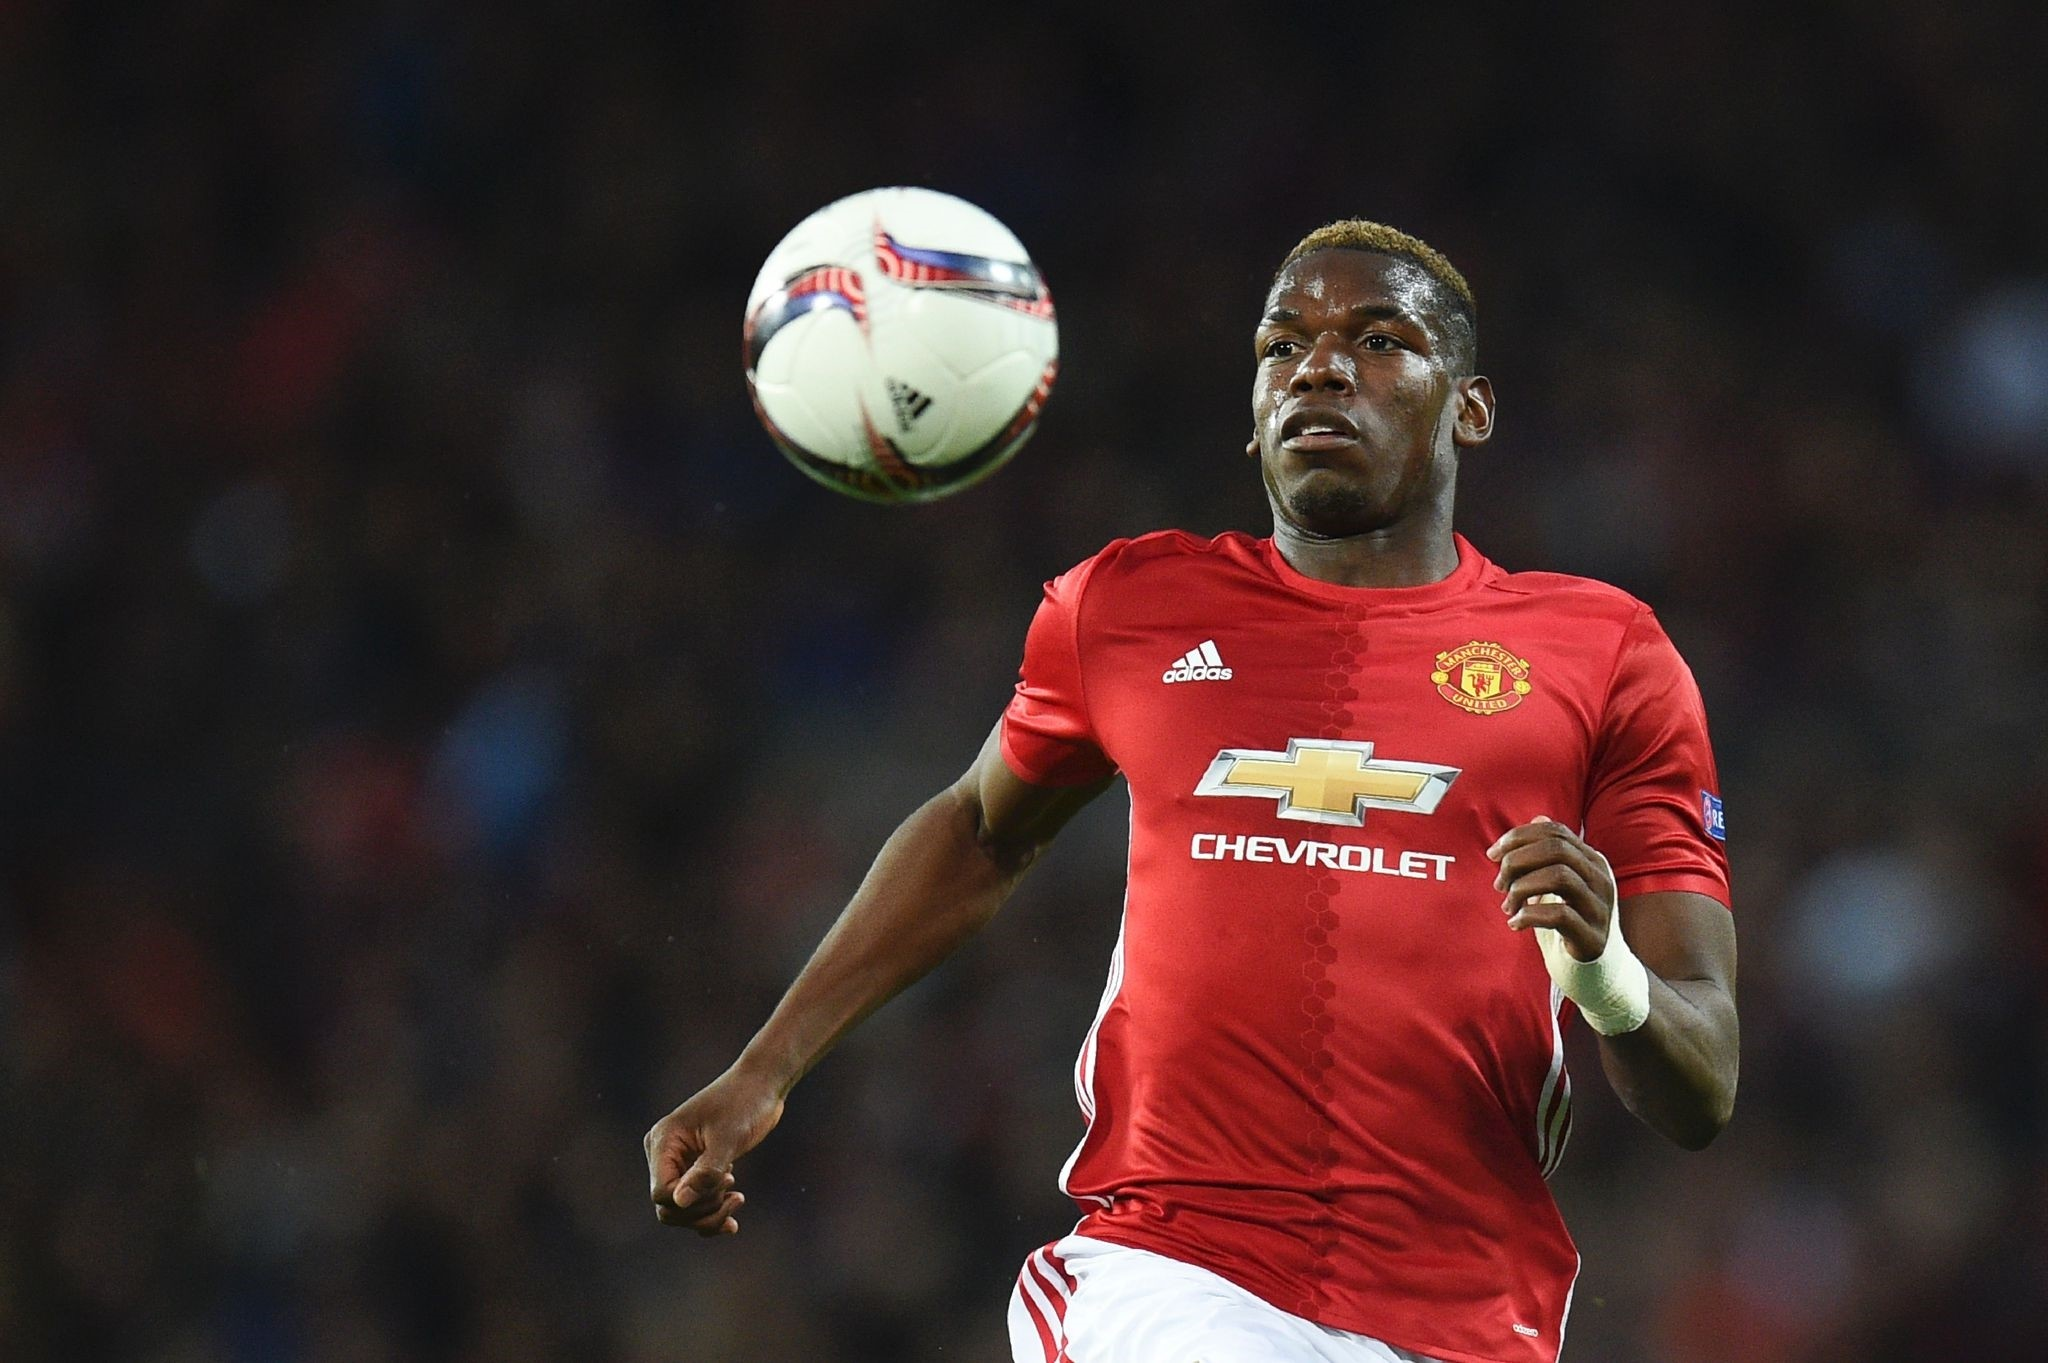 Manchester United's French midfielder Paul Pogba chases the ball during the UEFA Europa League quarter-final second leg football match between Manchester United and Anderlecht at Old Trafford in Manchester, north west on April 20, 2017. (AFP Photo)